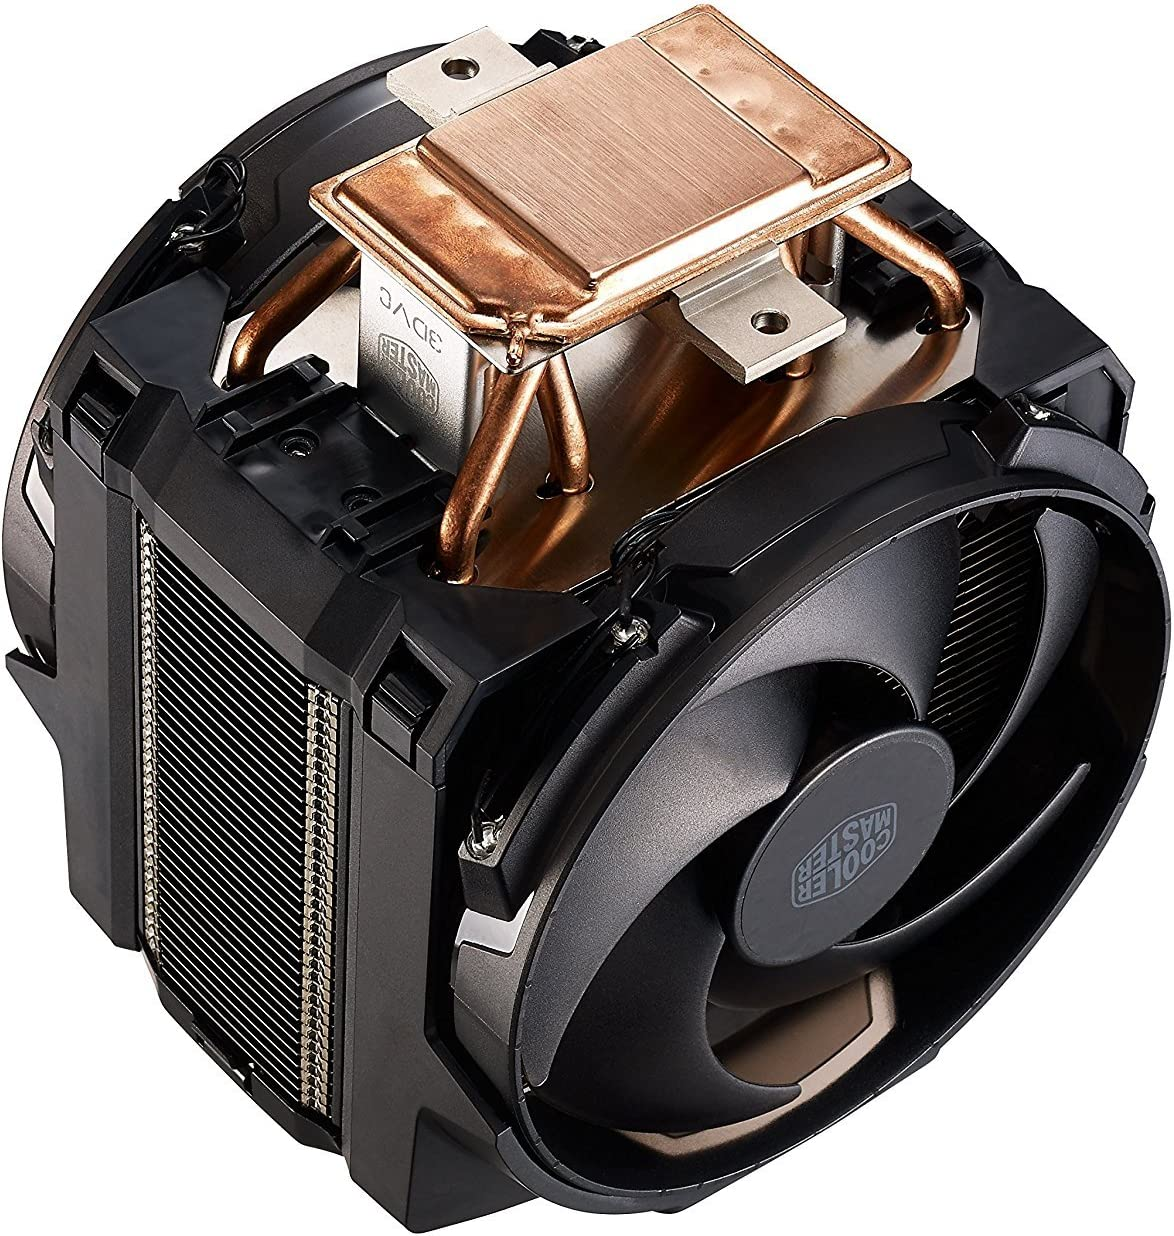 Cooler Master MasterAir Maker 8 CPU Air Cooler 8 Heatpipes Red LED MAZ-T8PN-418PR-R1 2X Silencio FP PWM Fans